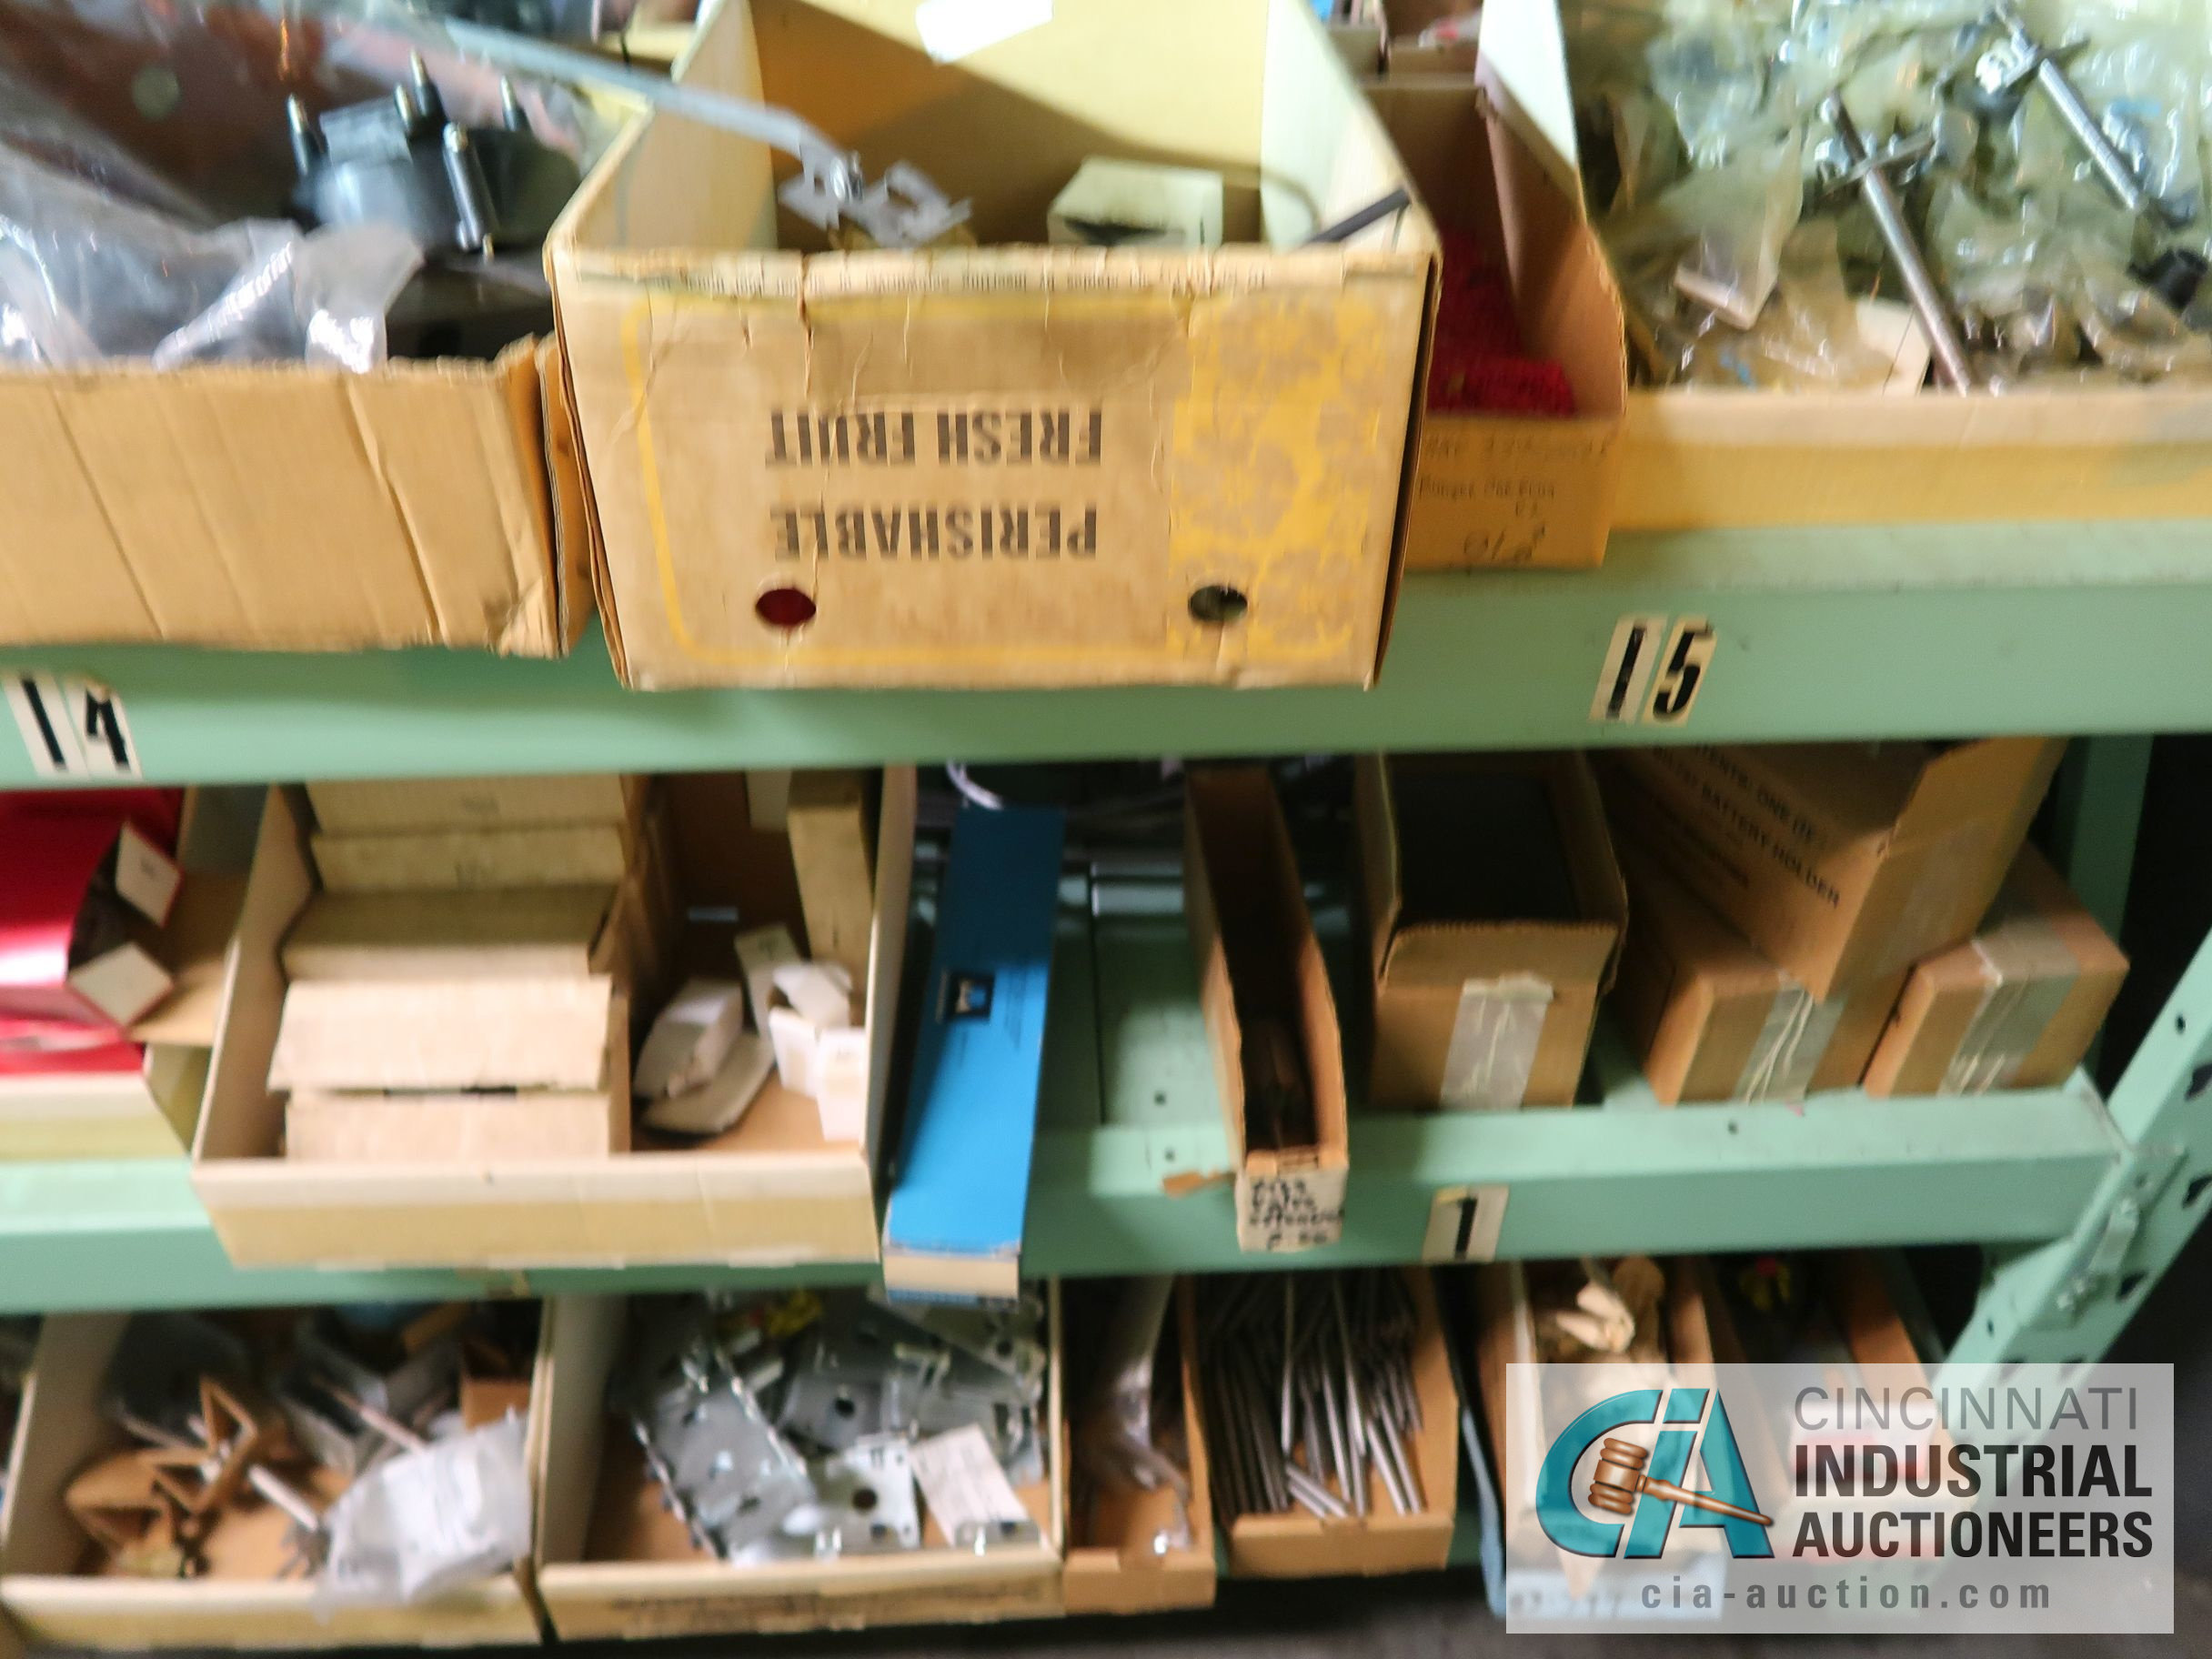 CONTENTS OF (5) RACKS INCLUDING MISCELLANEOUS AUTOMOTIVE PARTS, LIGHTS, FILTERS, ENGINE PARTS, RIMS, - Image 10 of 29